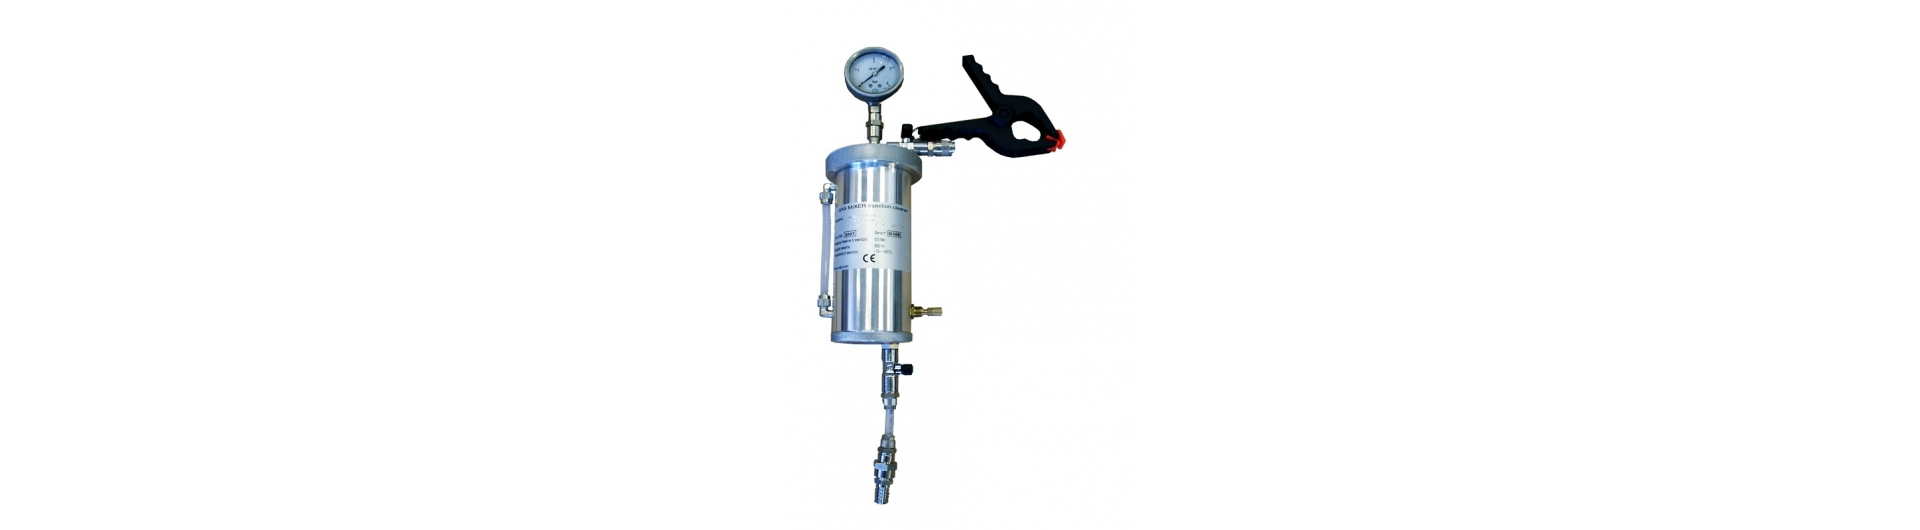 2054 Gas Mixer Injection Cleaner